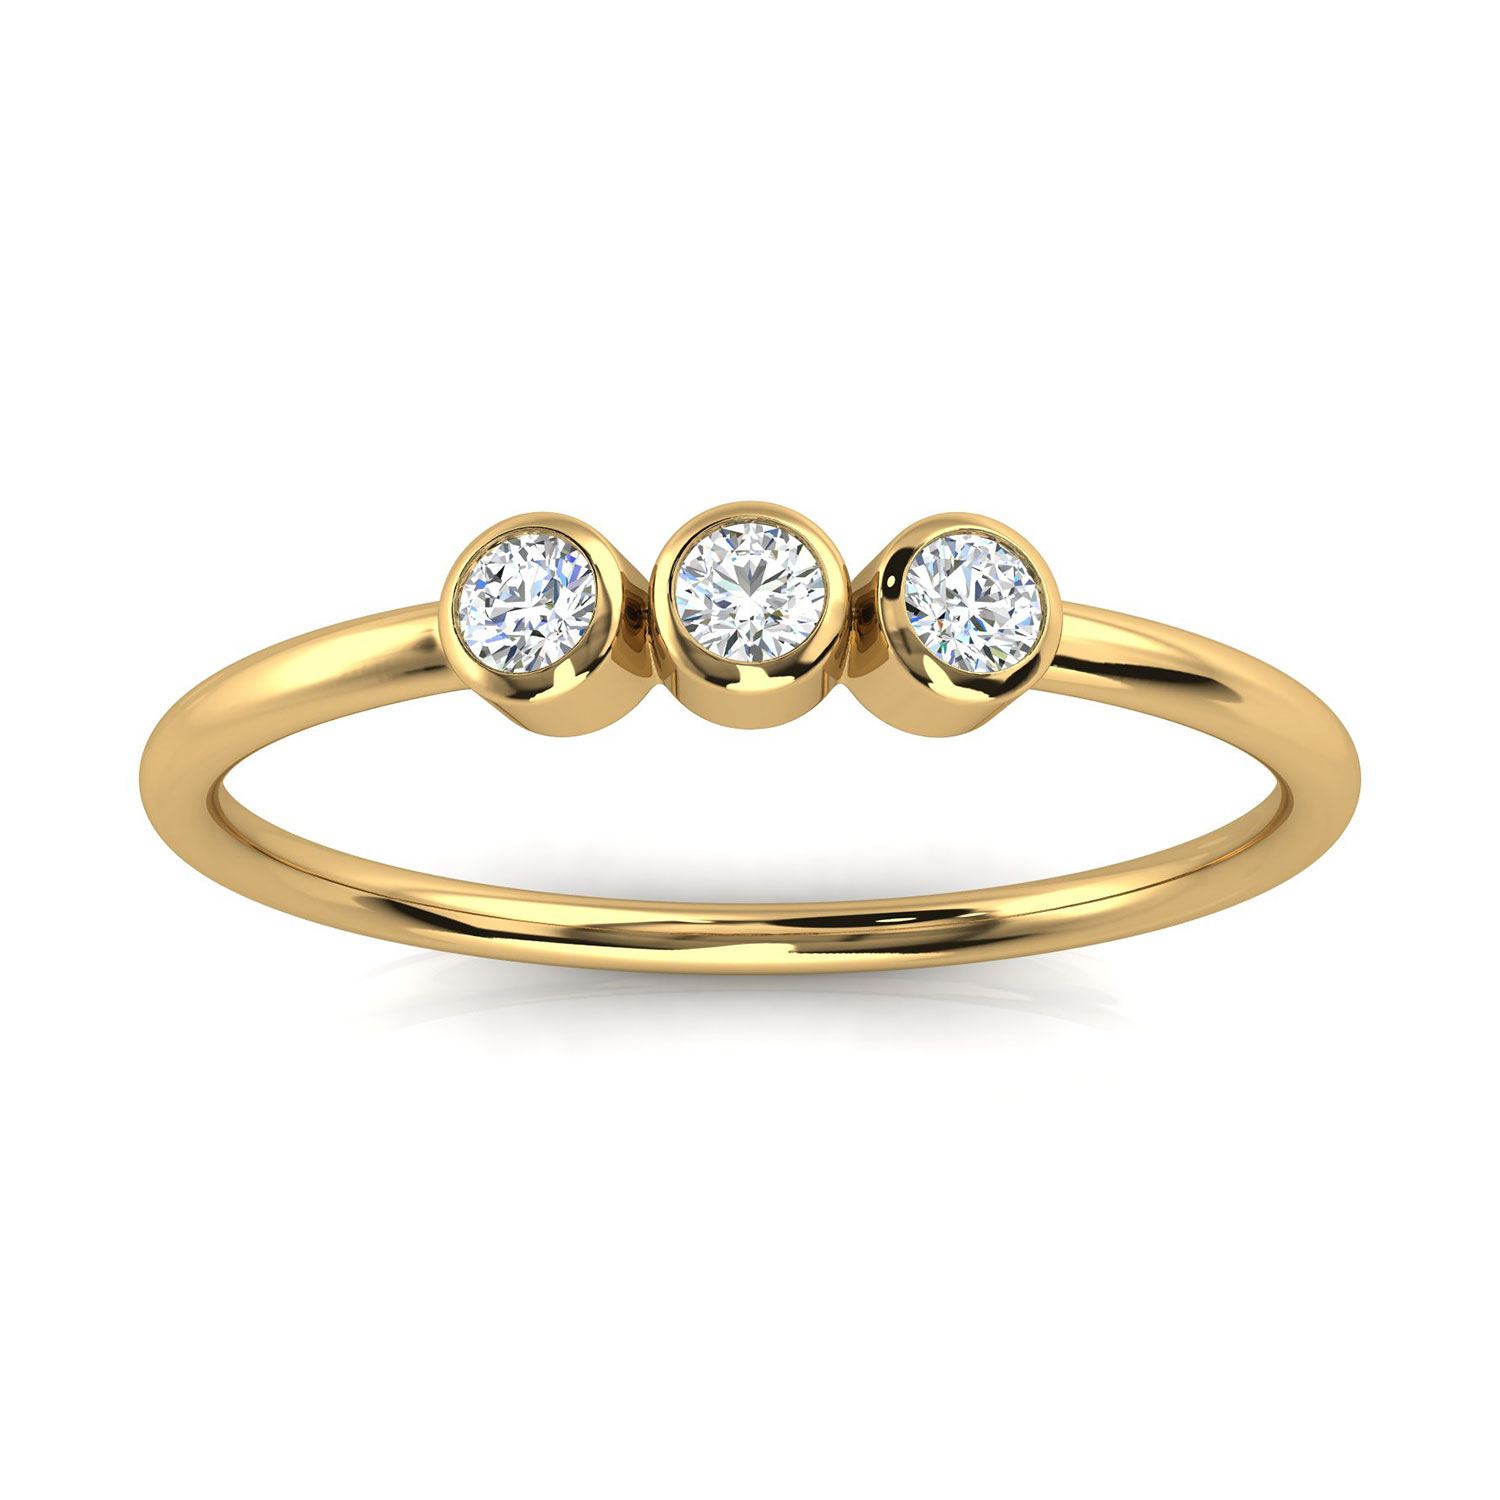 14K Yellow Gold Petite Almenthia Trilogy Diamond Ring (1/10 ct. tw)